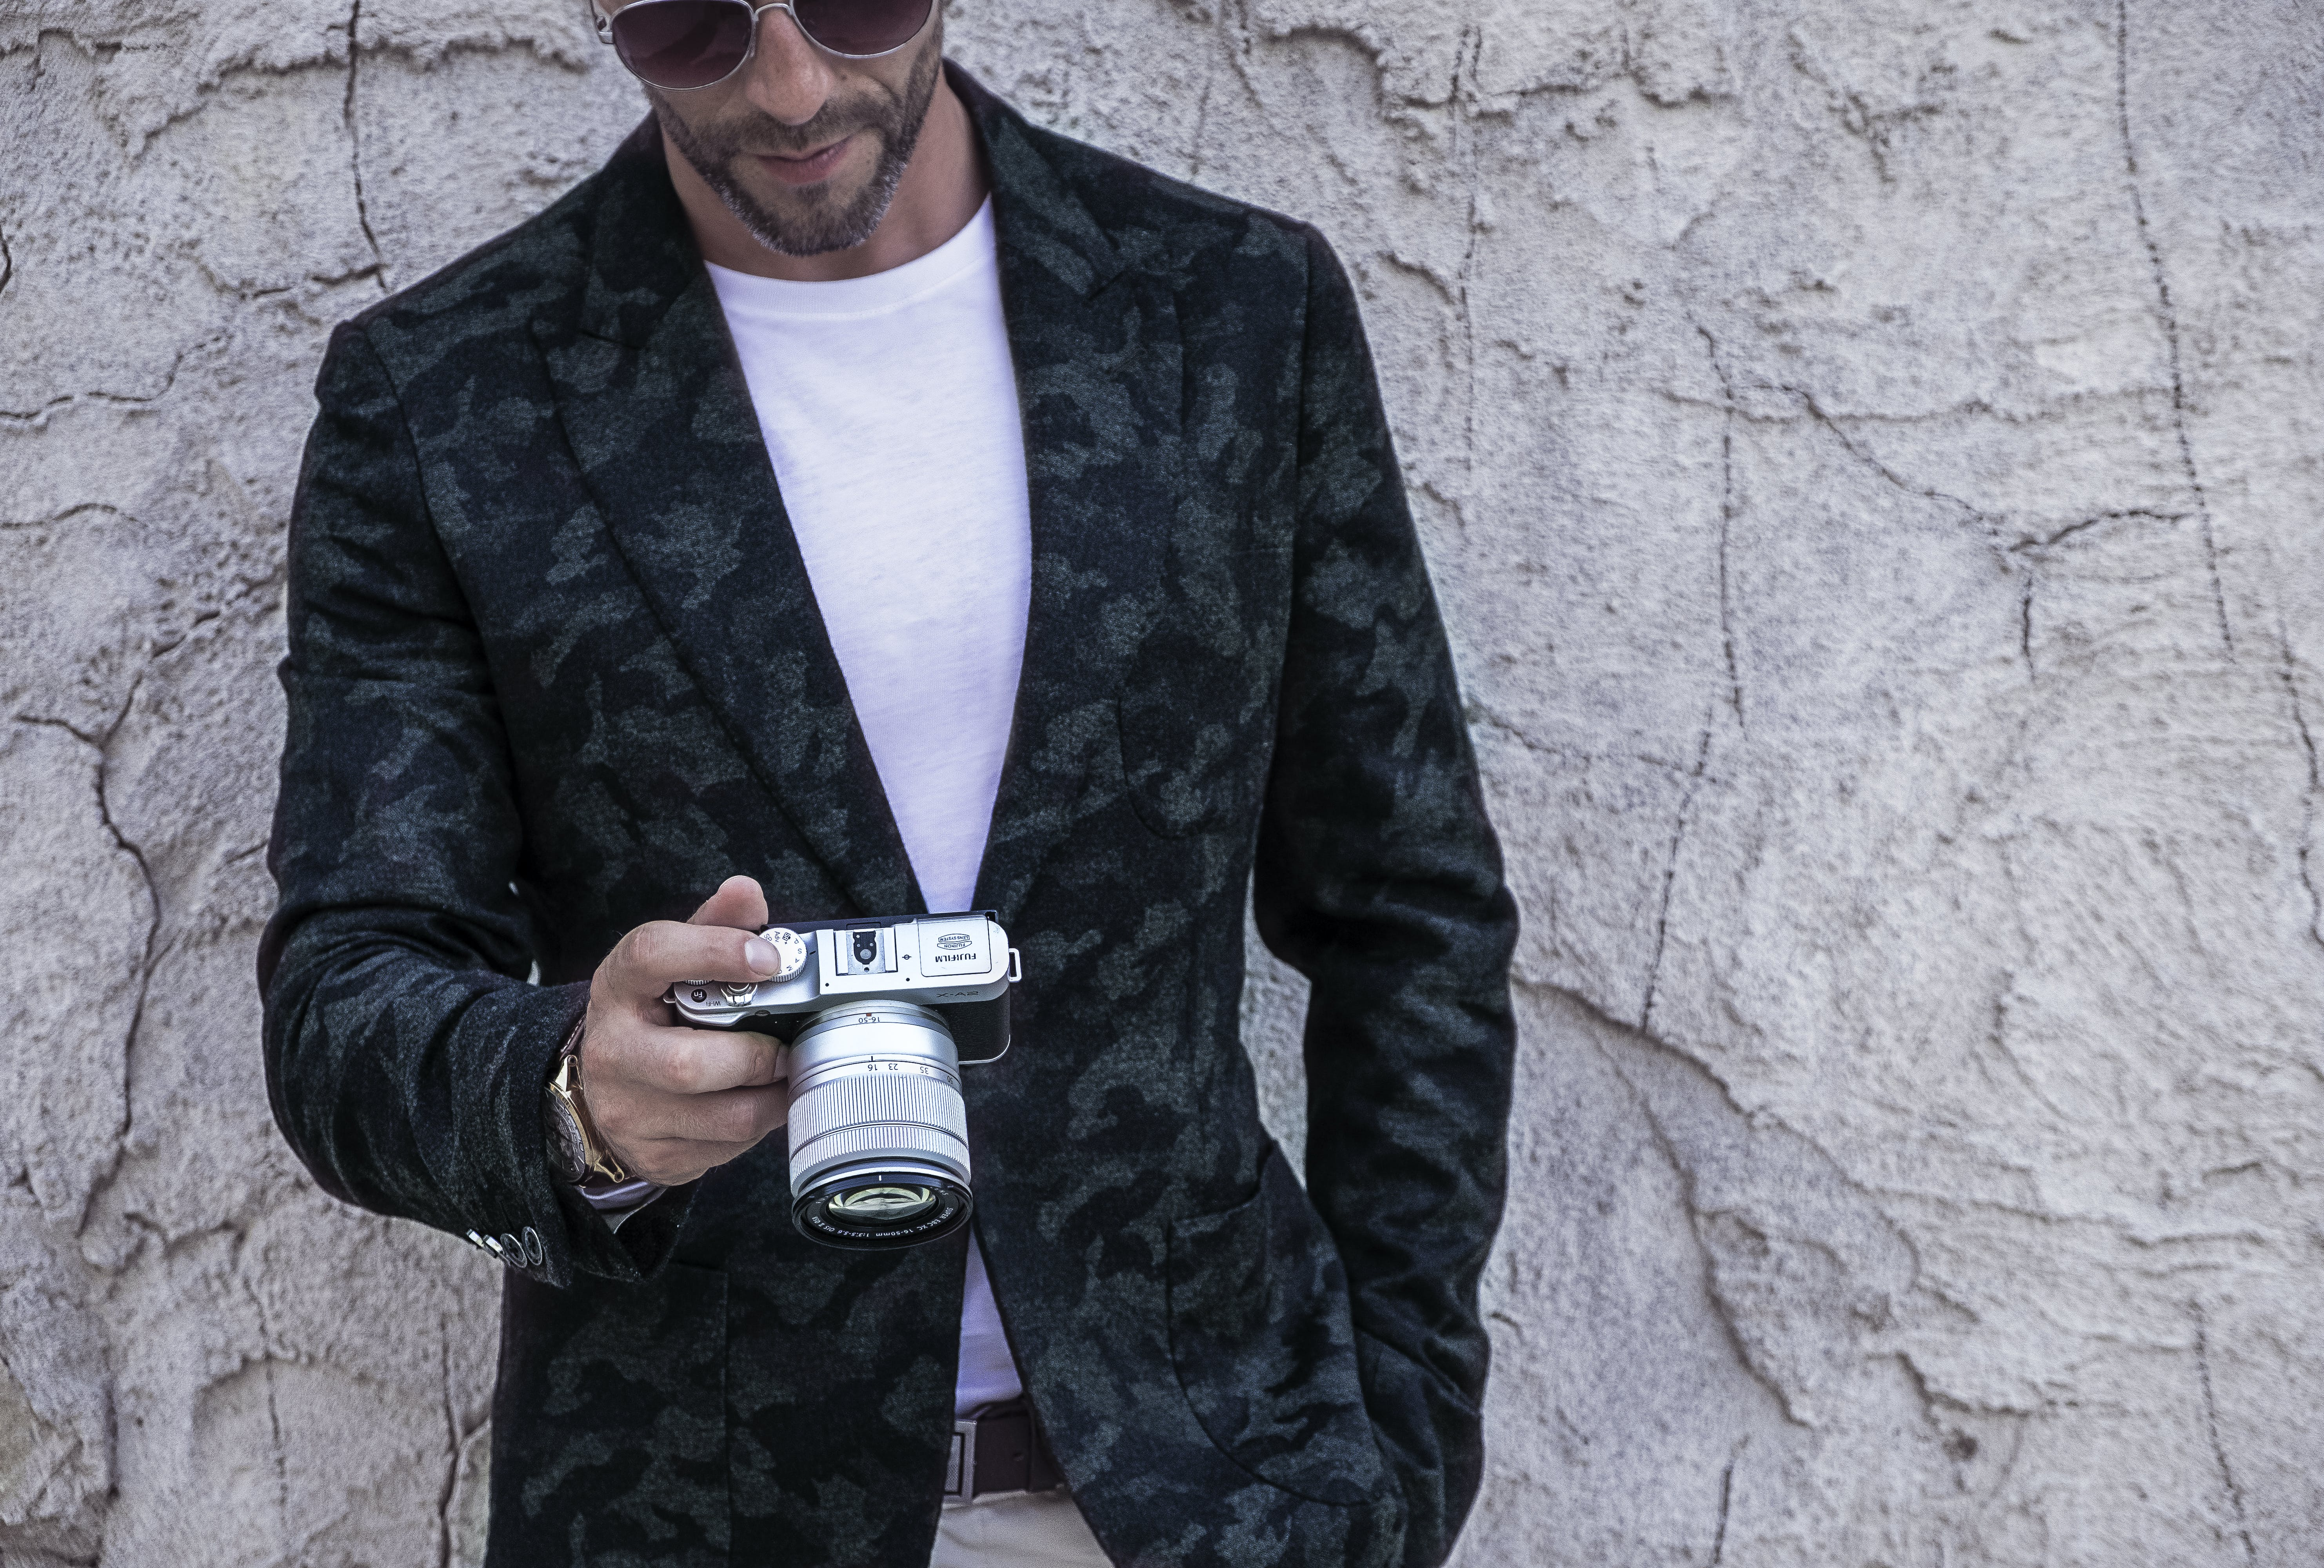 Man in Blue and Black Camouflage Coat Holding Silver Dslr Camera Standing in Front of Gray Concrete Wall